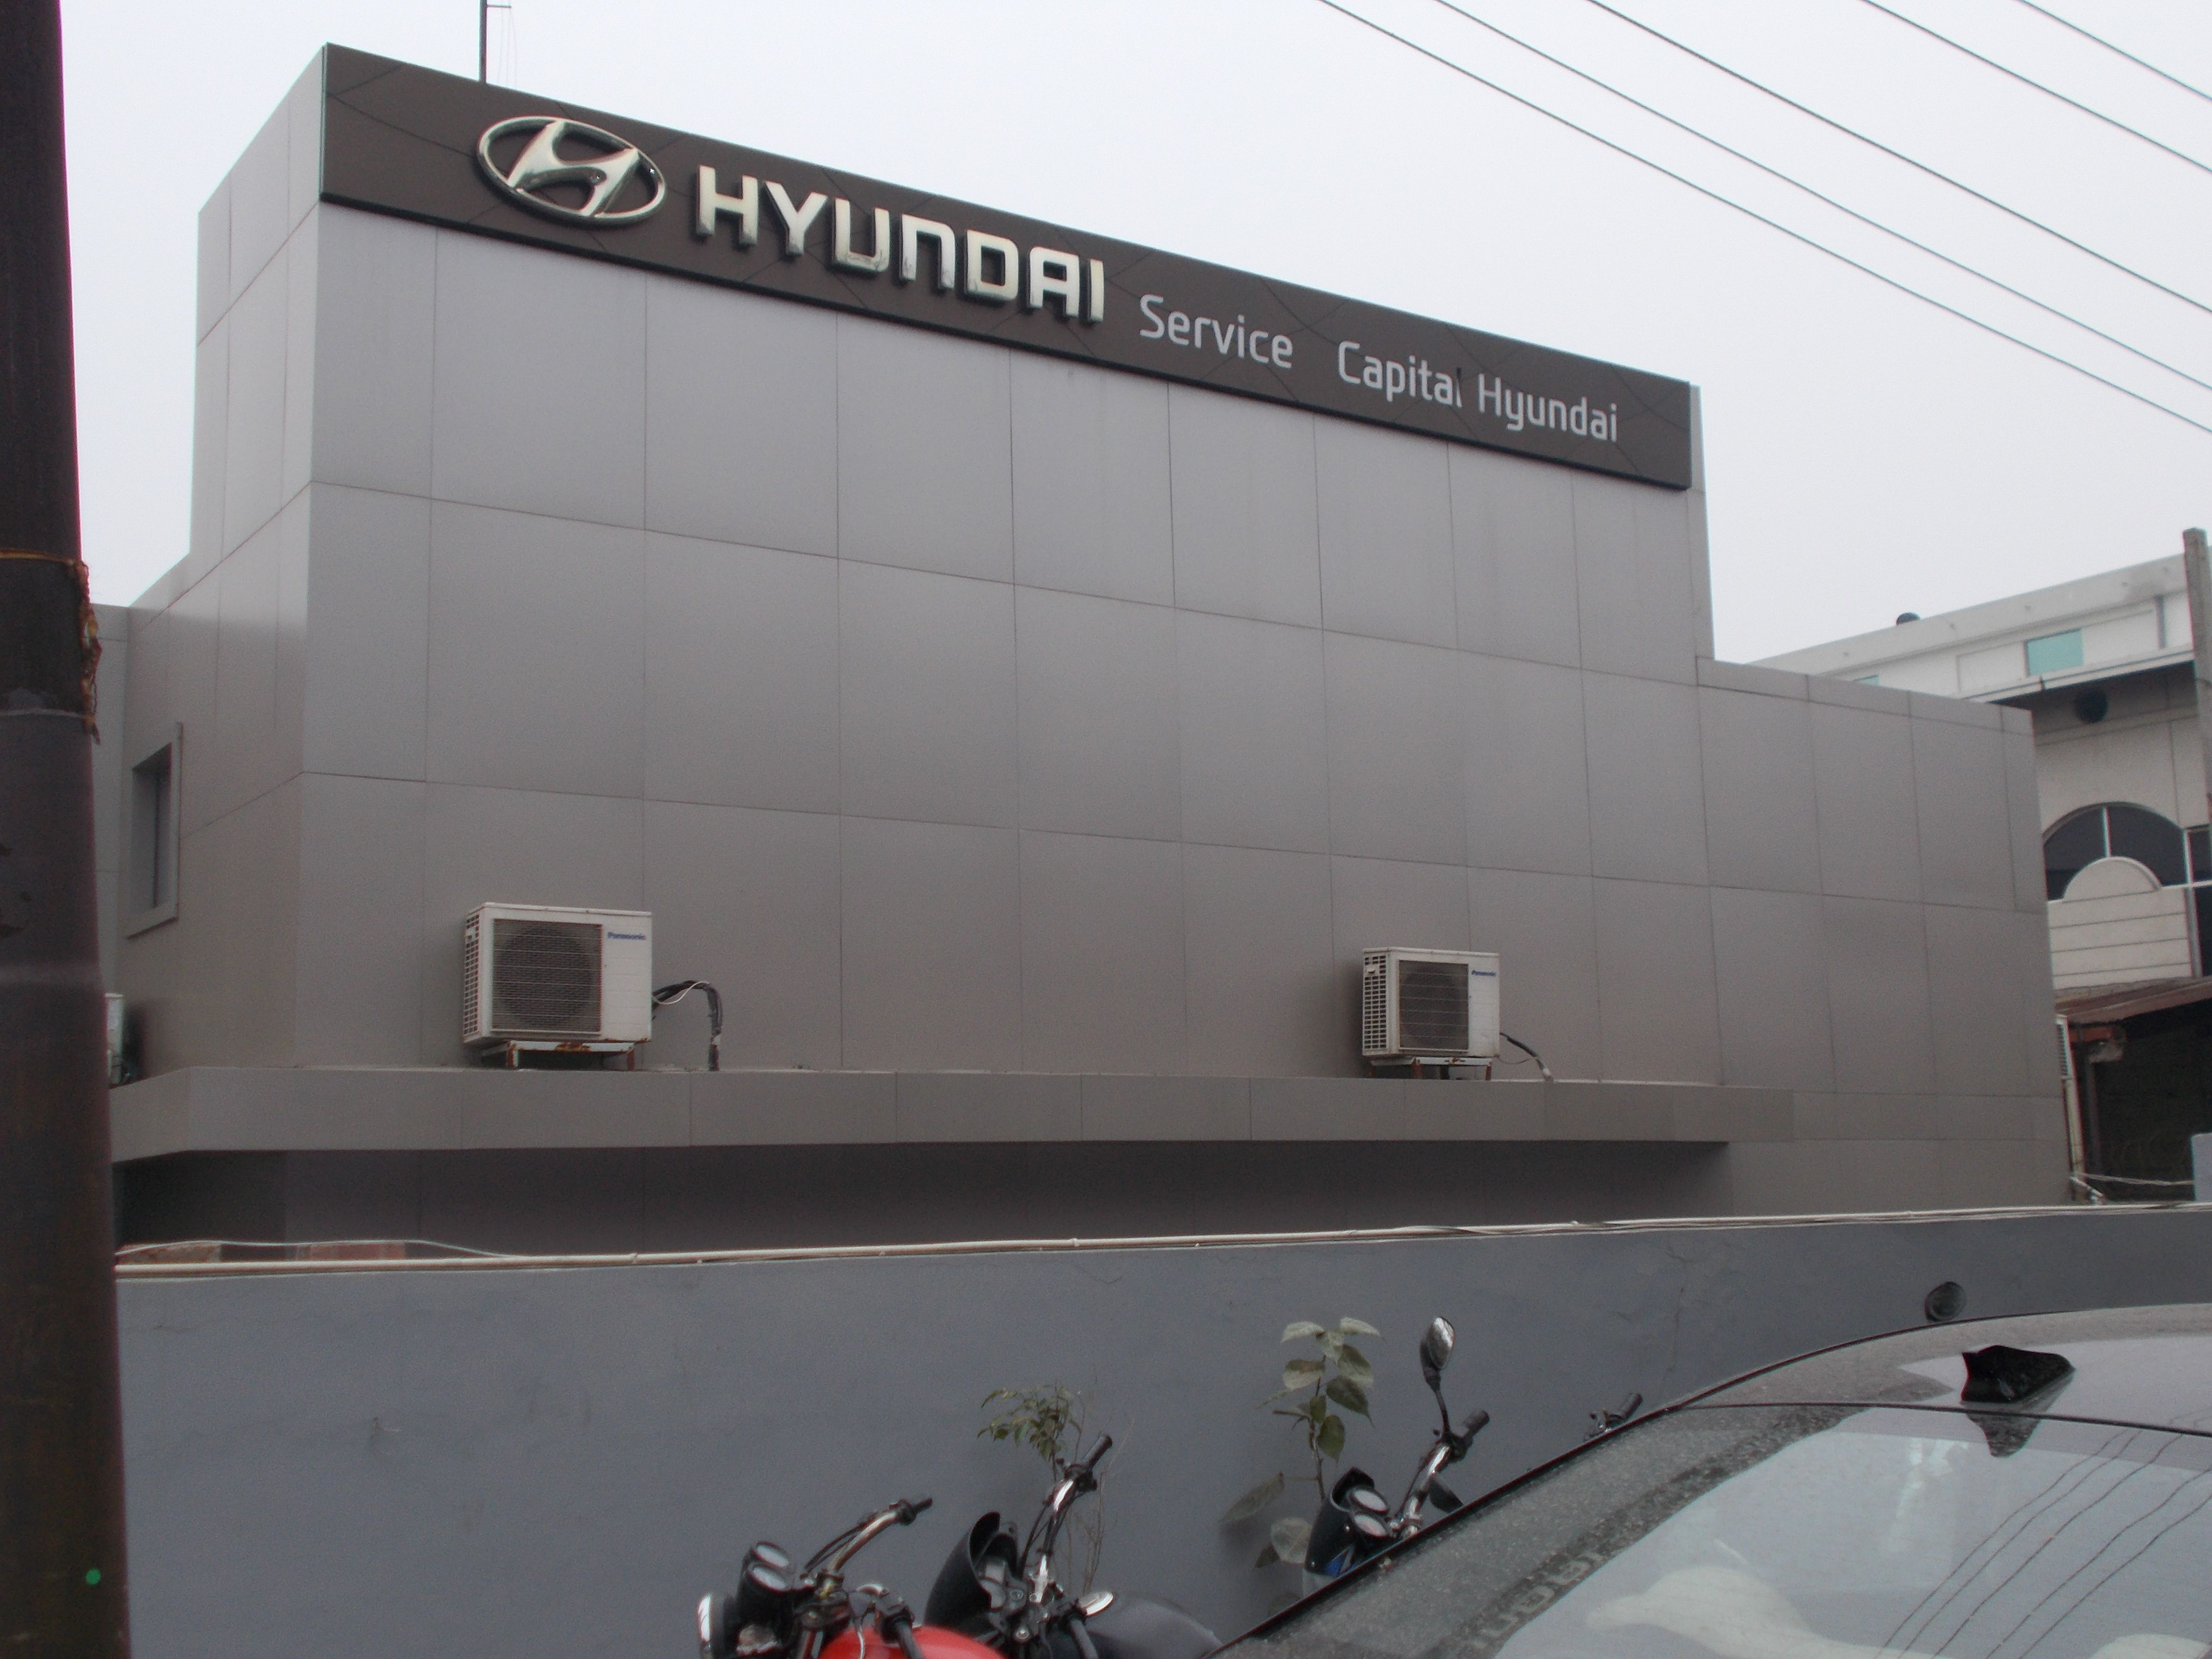 Are you looking for the best Hyundai Service Centre in